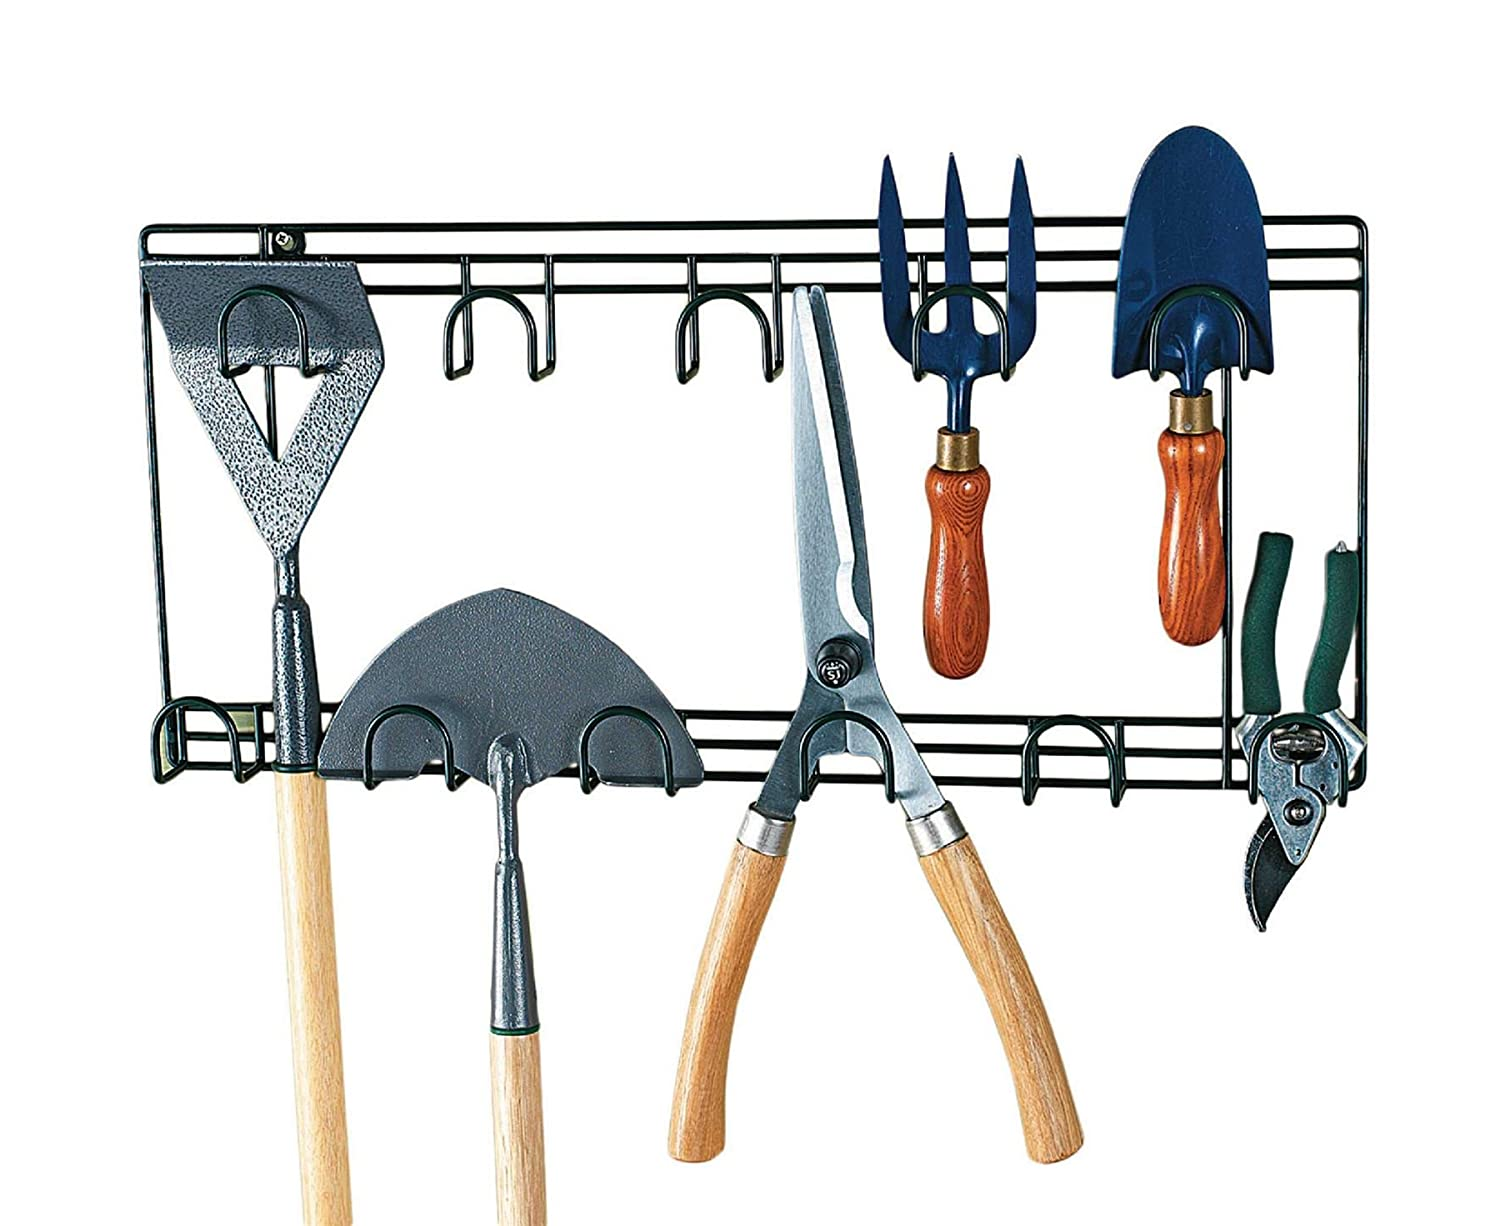 Garden Tool Double Rack Wall Garage Organiser Holder DIY Storage 2 Rows Hooks MySmartBuy